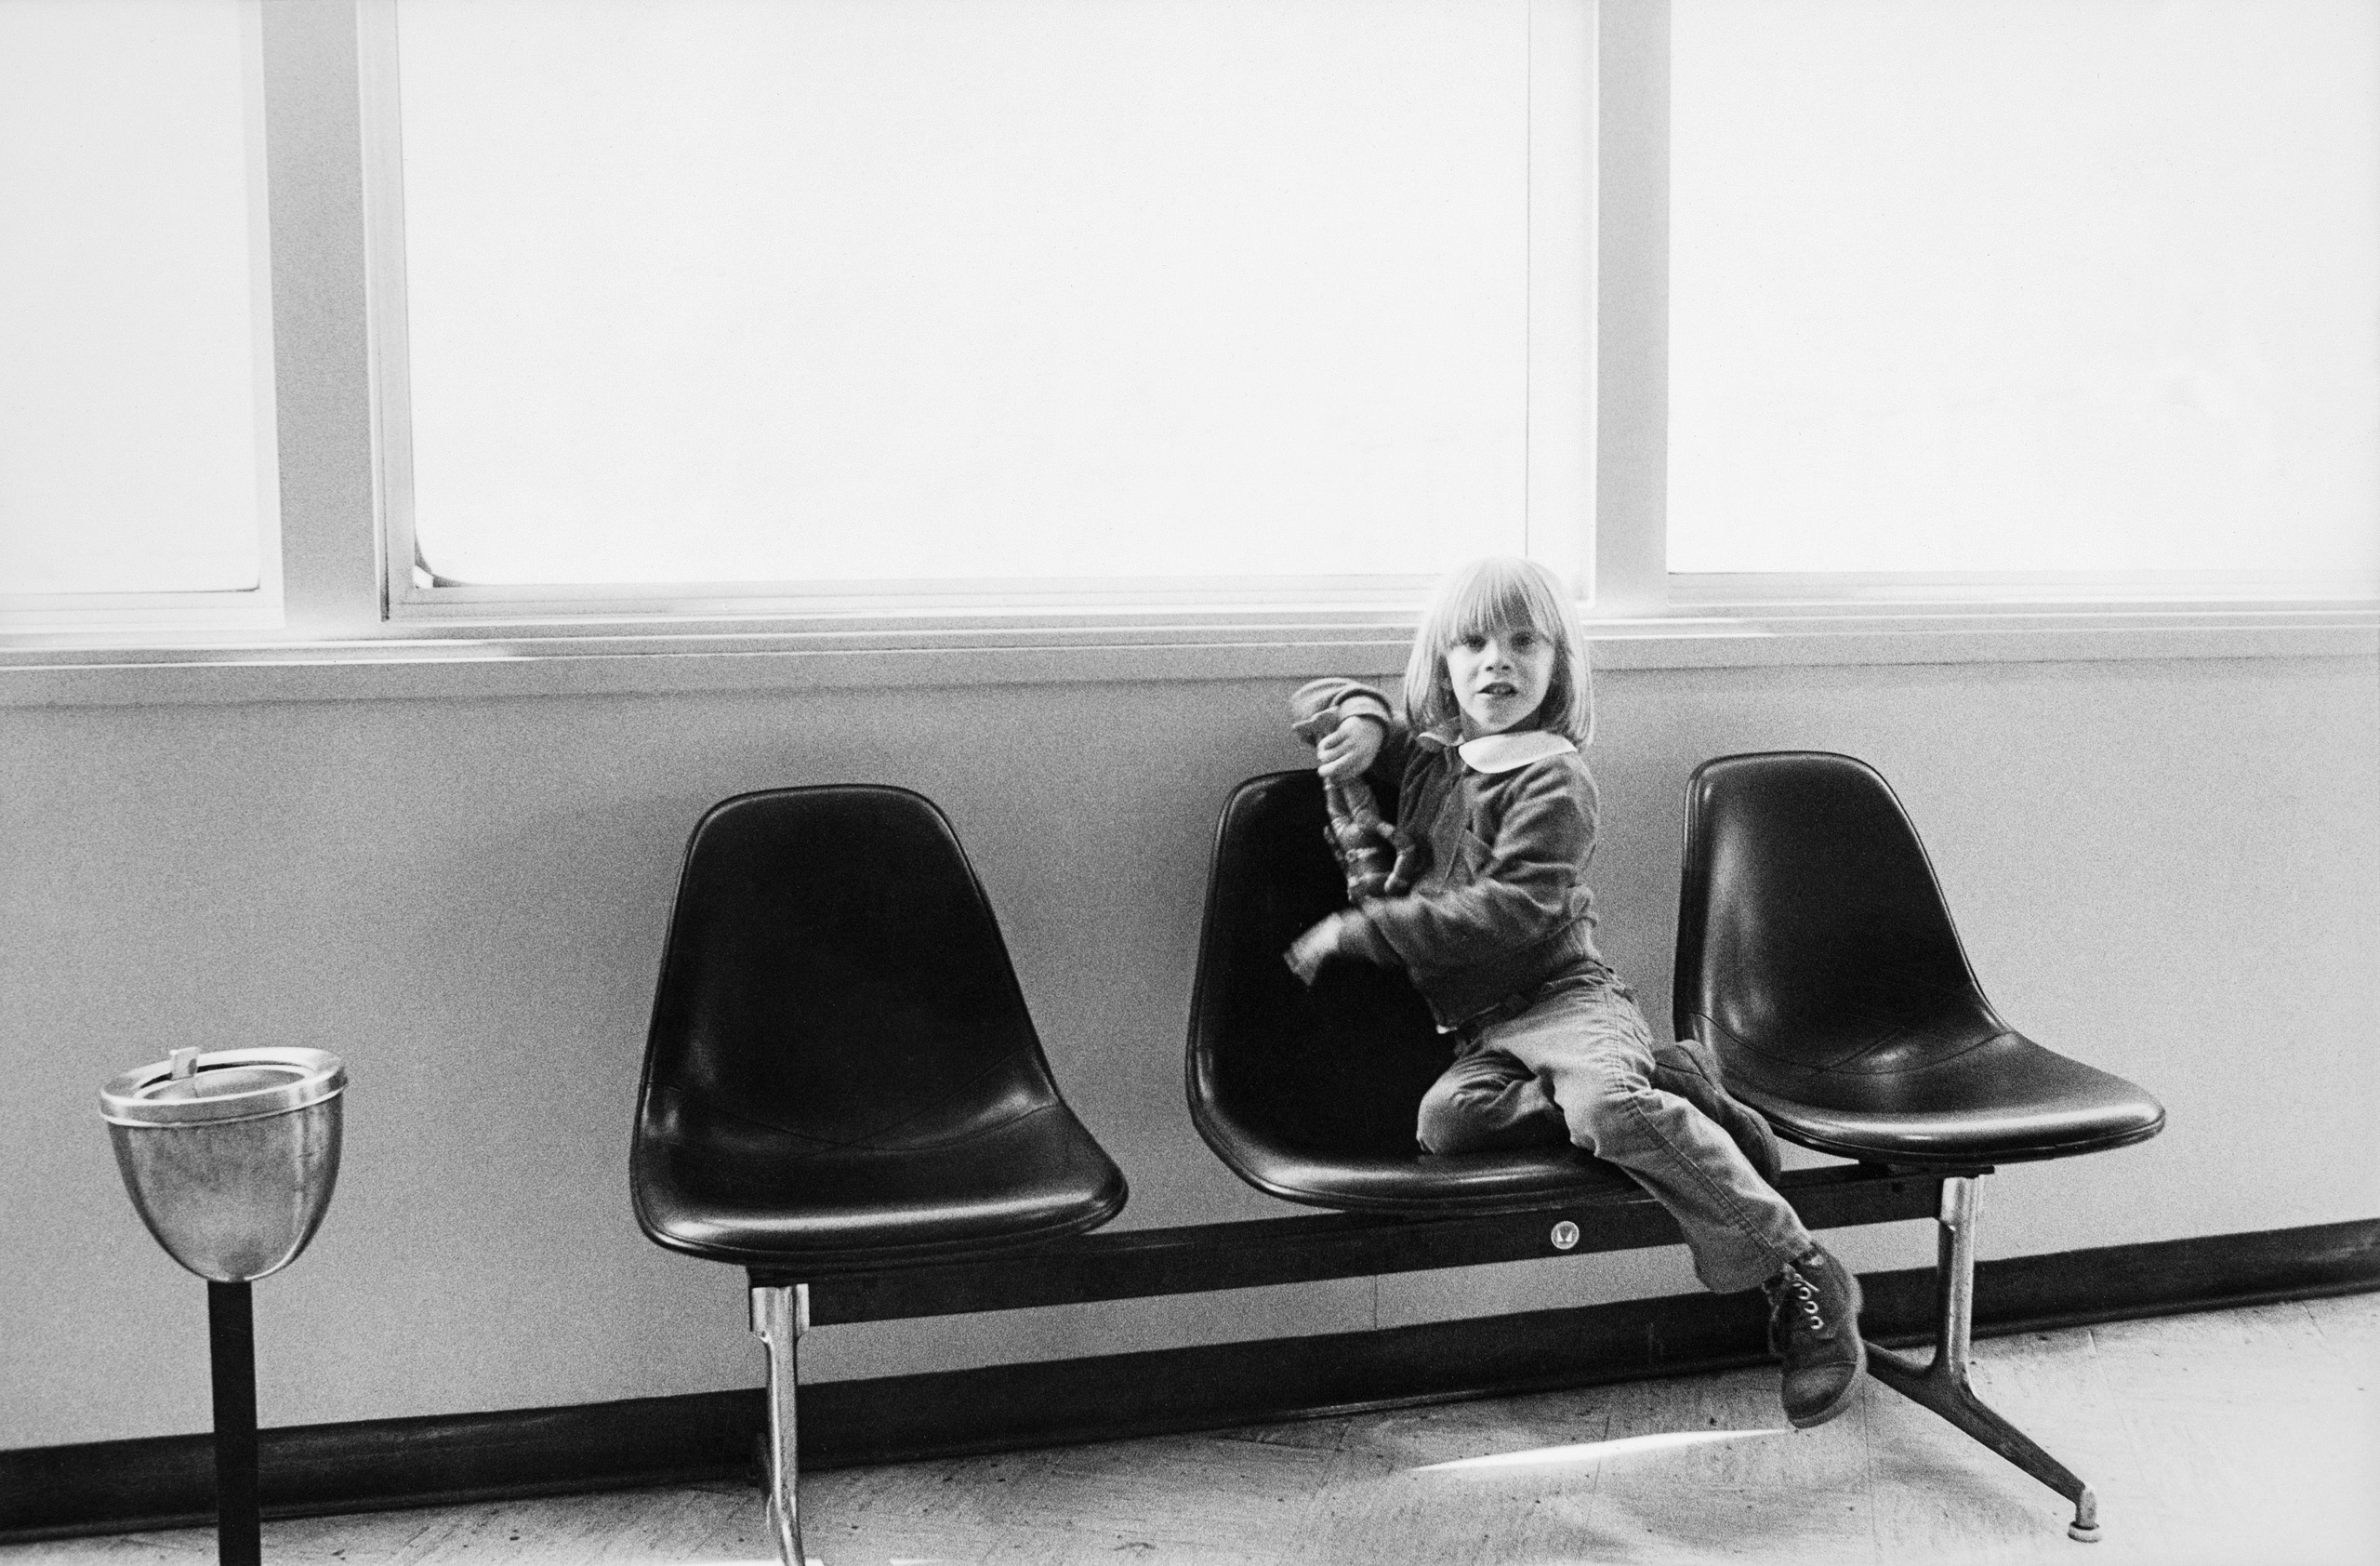 Five year old Zowie (Duncan Jones) plays with his  action figure in an airport lounge between stops on the Isolar tour.